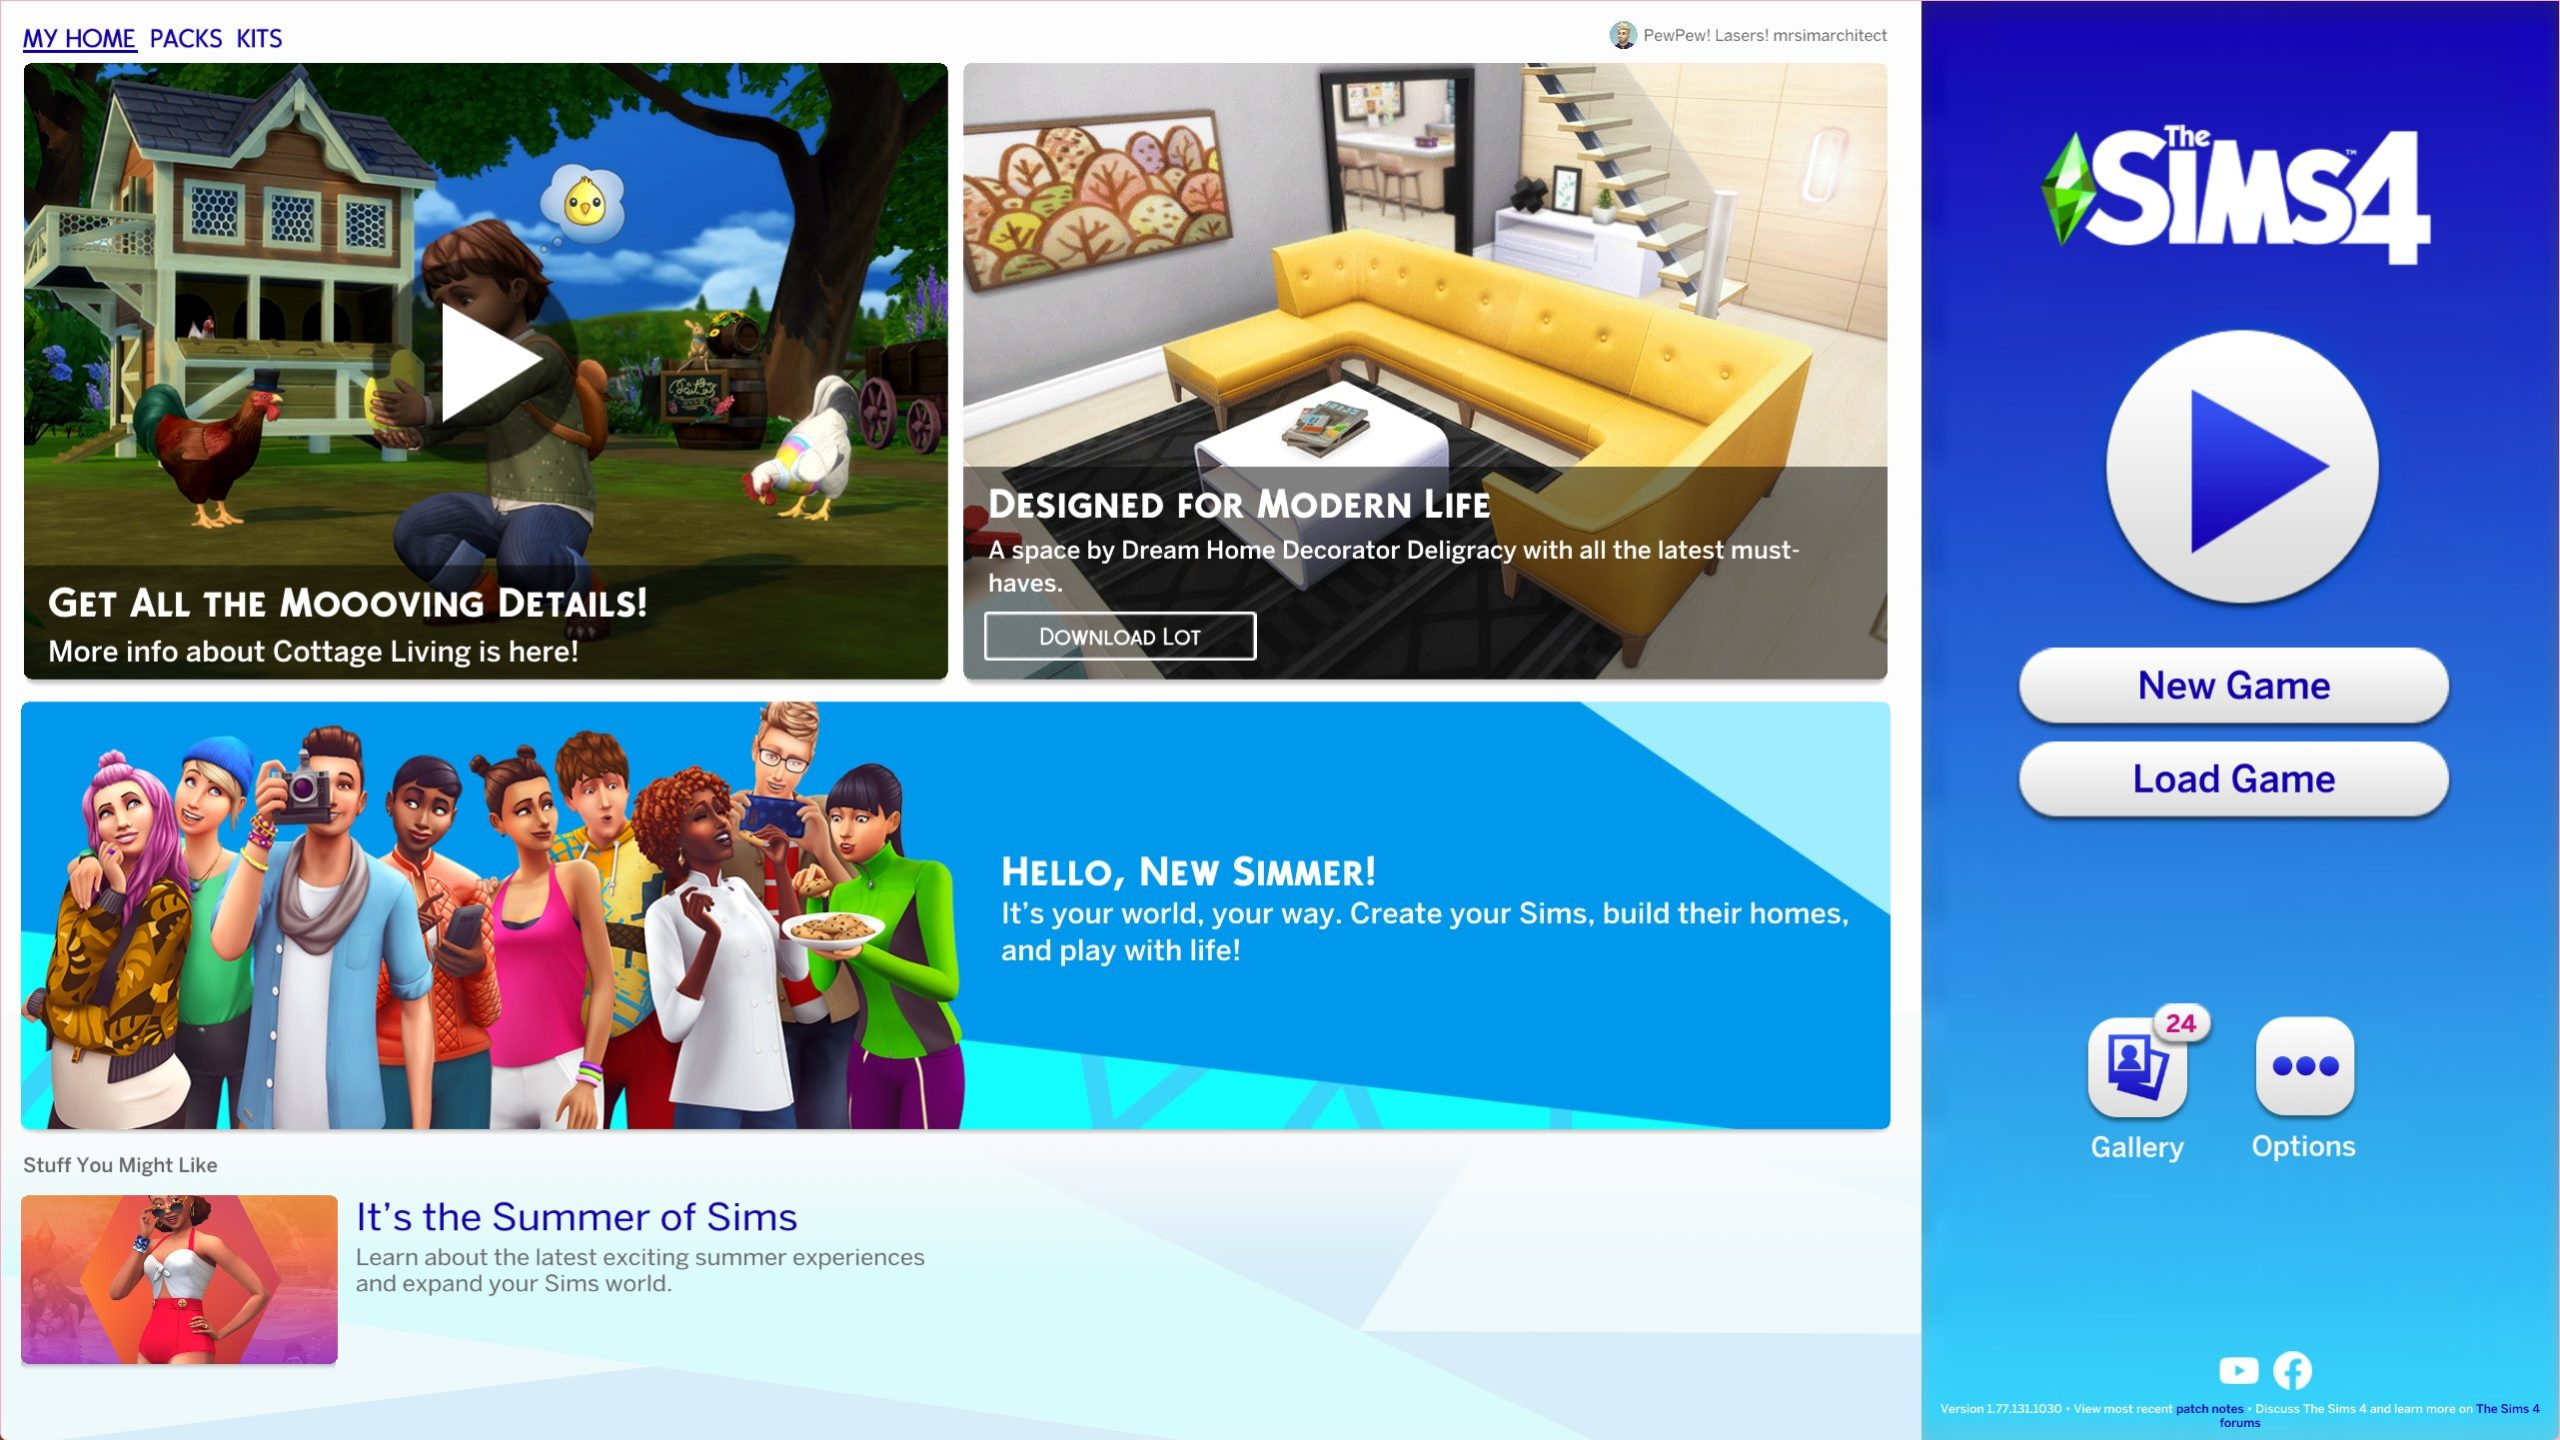 The Sims 4 1.77.131.1030 Title Screen